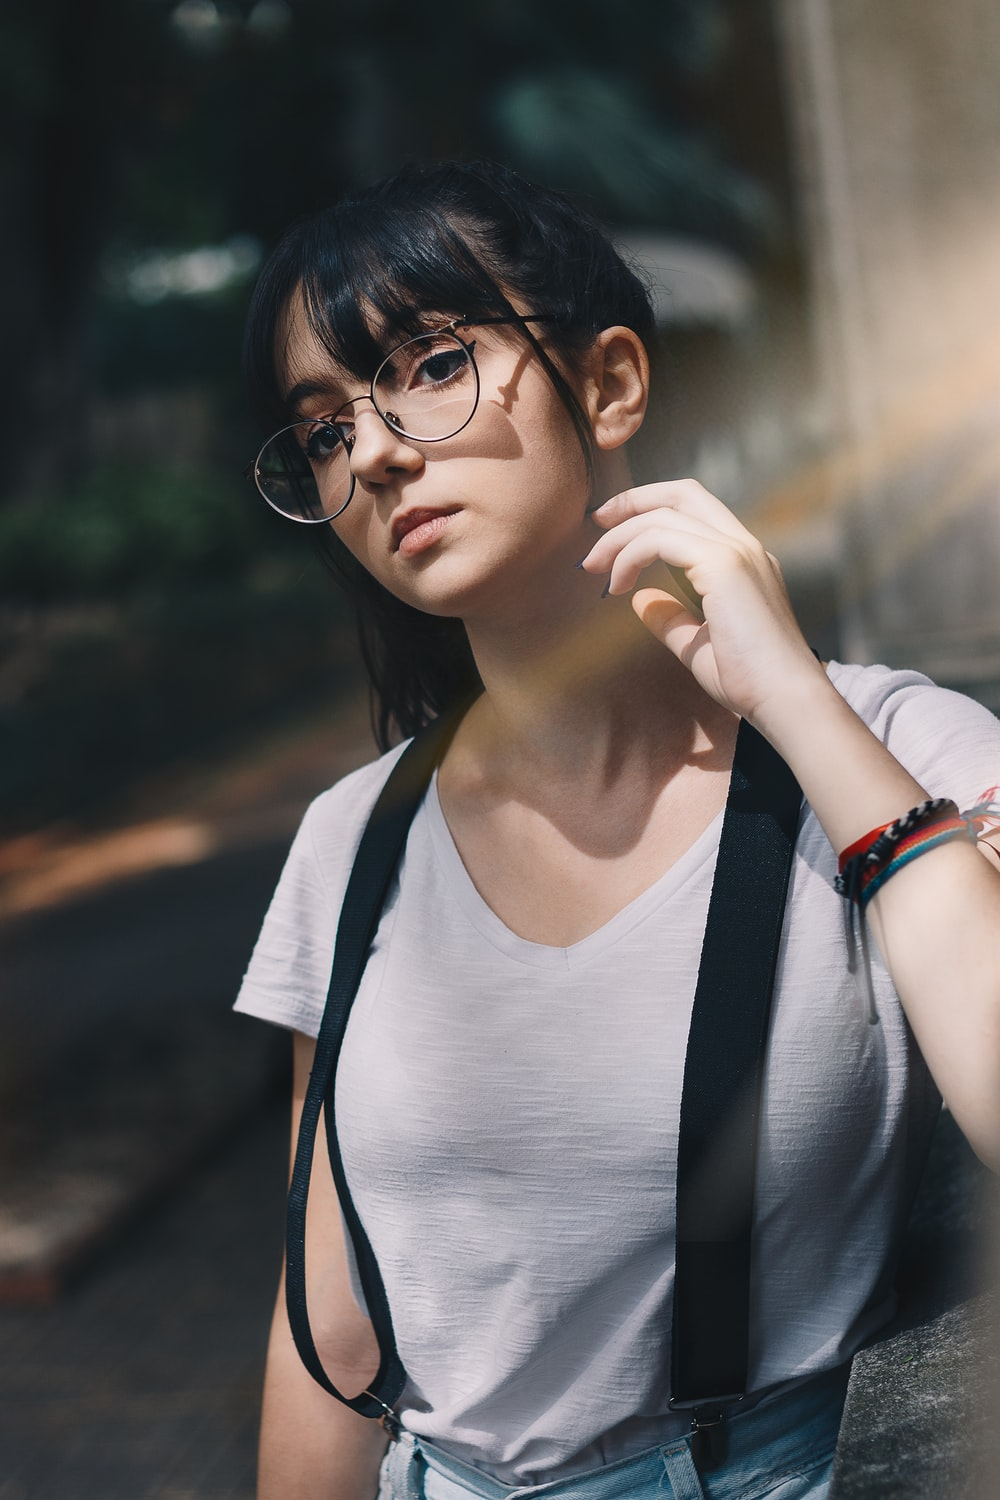 selective focus photography of woman wearing white top and black suspenser